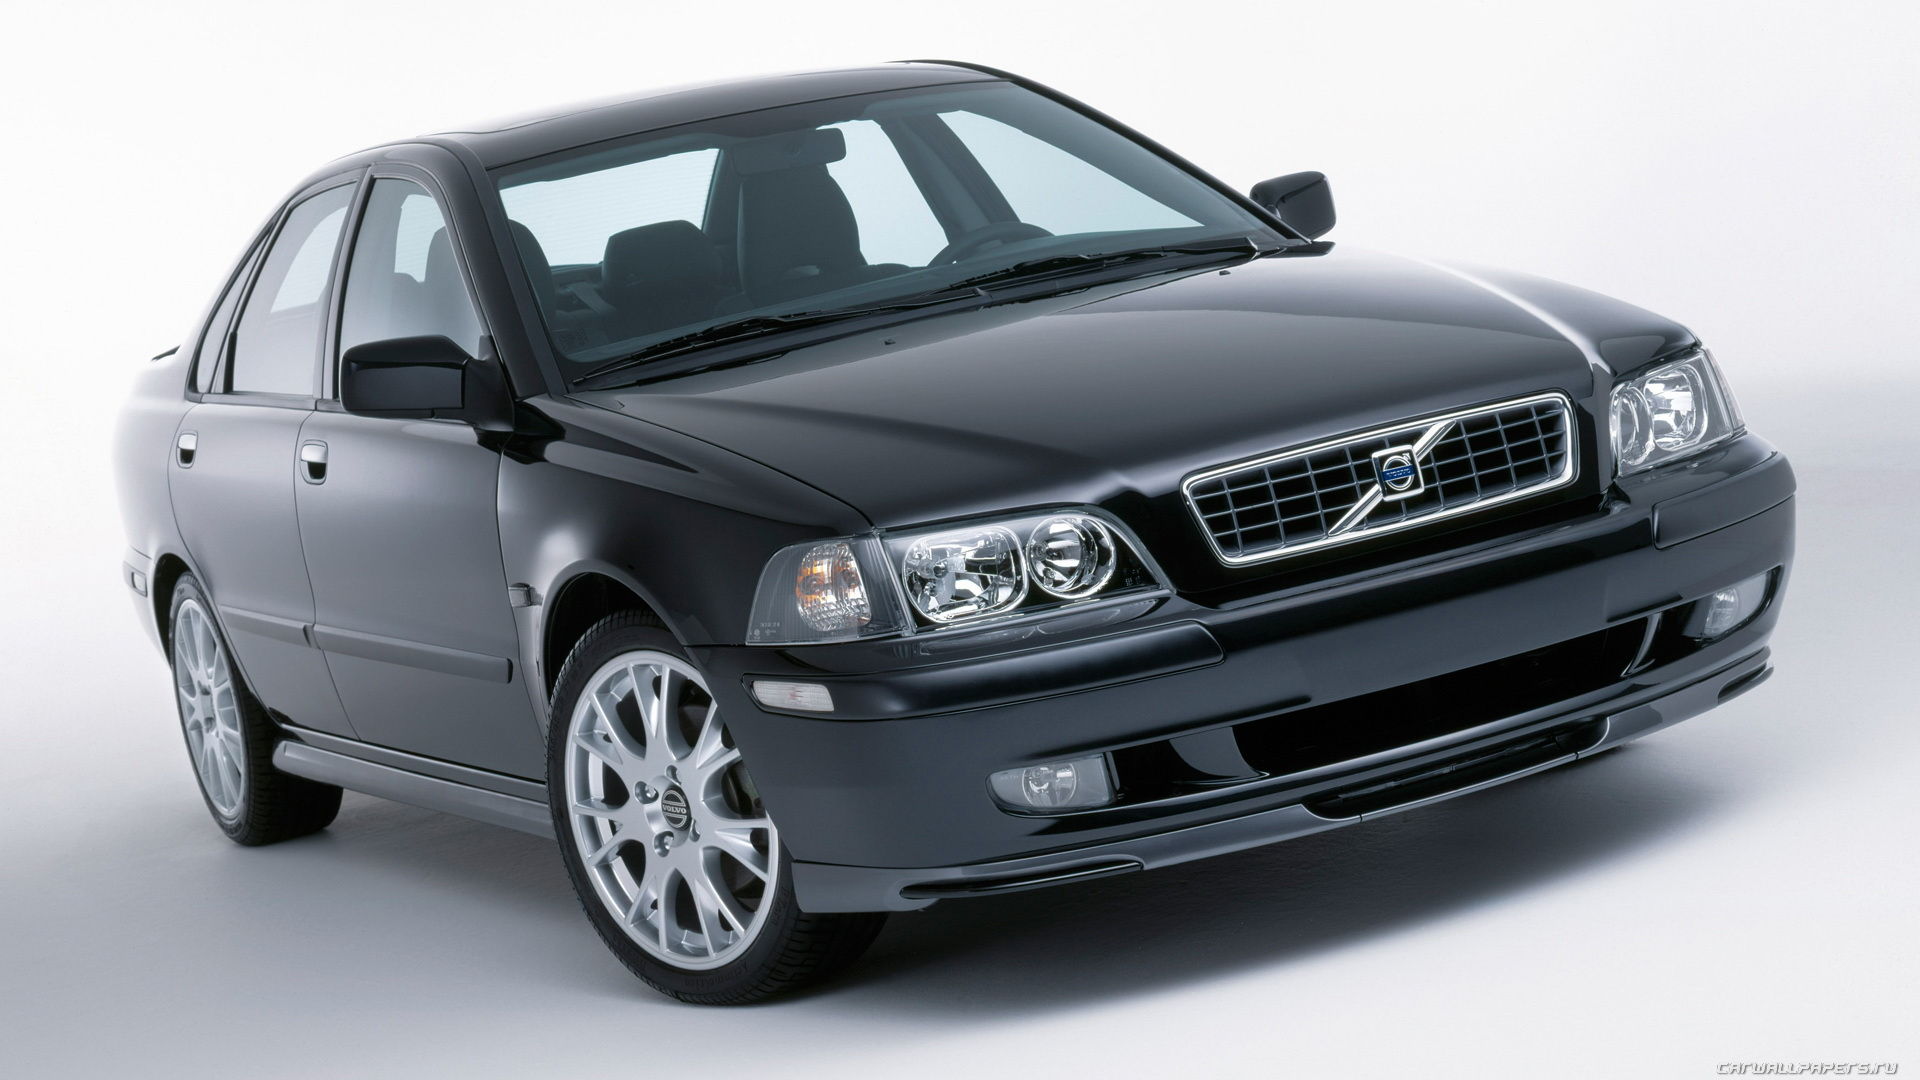 2003 volvo s40 information and photos zombiedrive. Black Bedroom Furniture Sets. Home Design Ideas